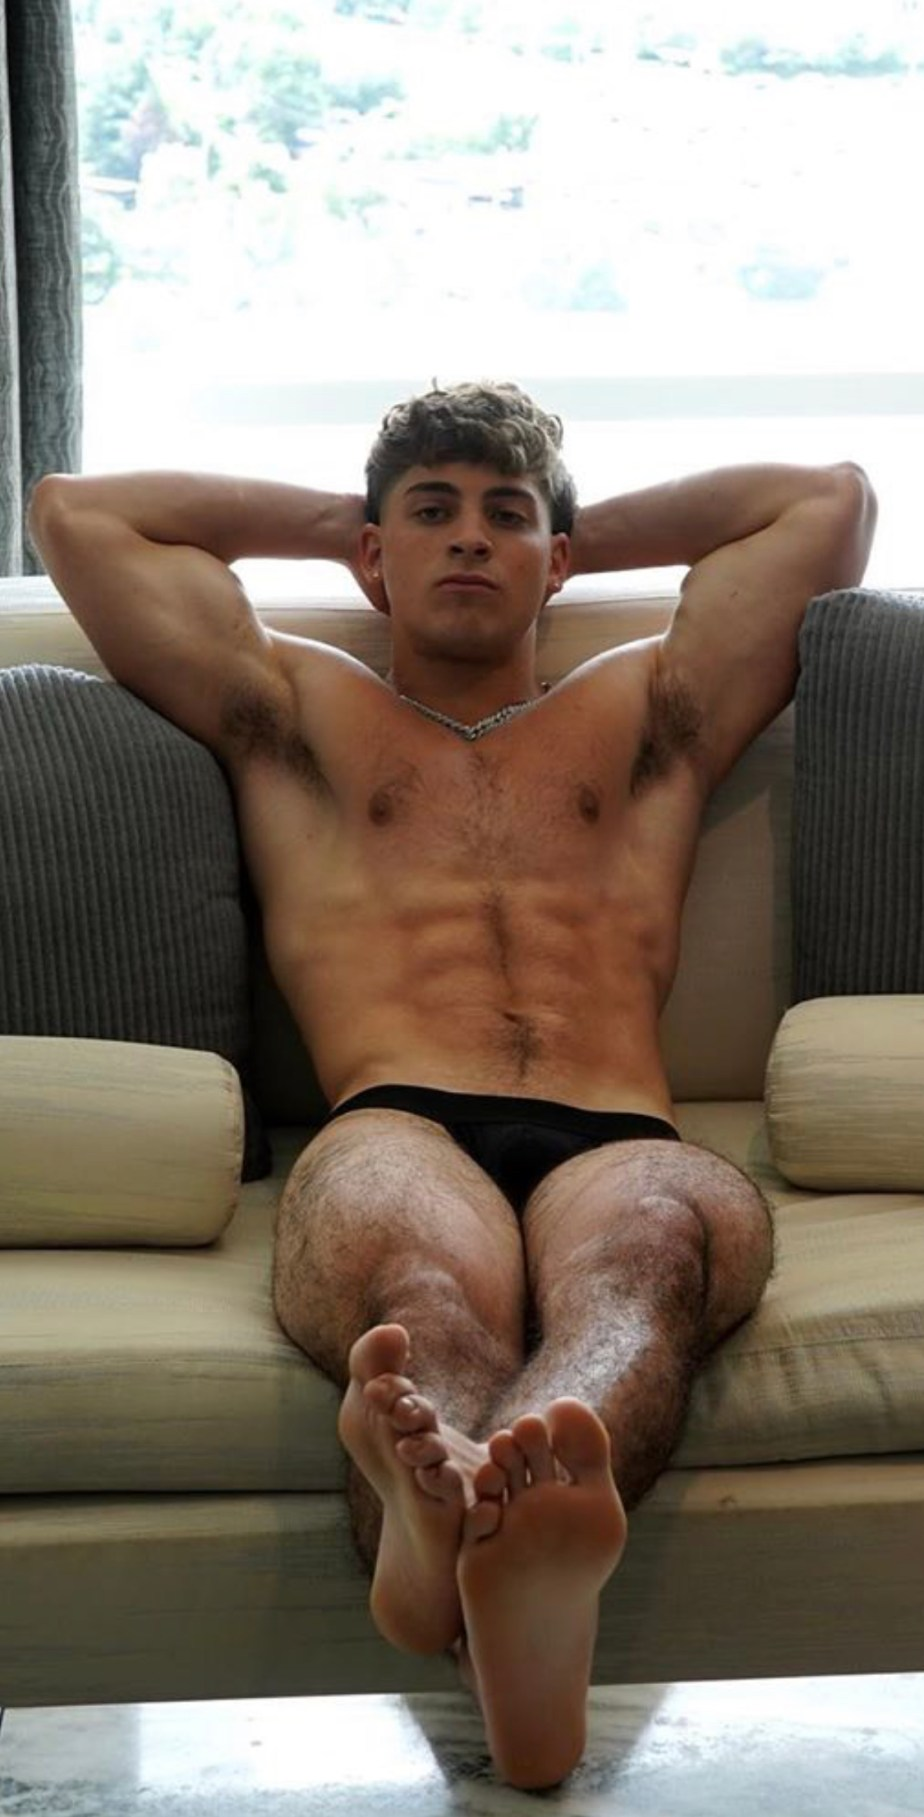 Shirtless realflexmasterjoe shows off his armpits and bare soles